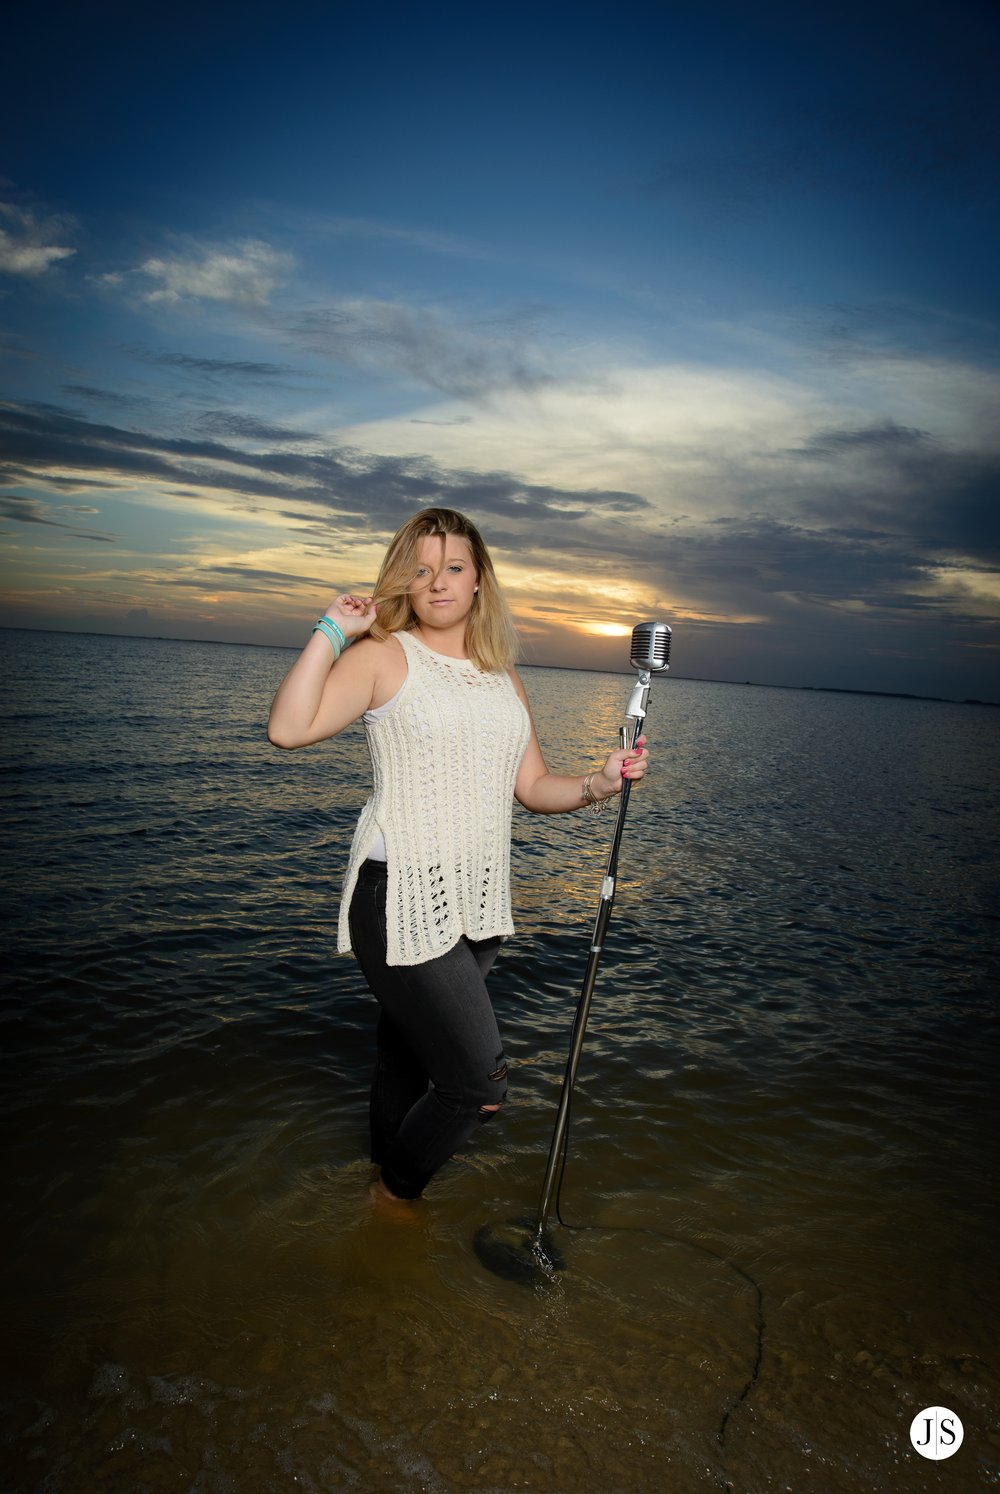 senior-portraits-beach-sunset-salisbury-music-singer-guitar-hat-maryland-photo 11.jpg